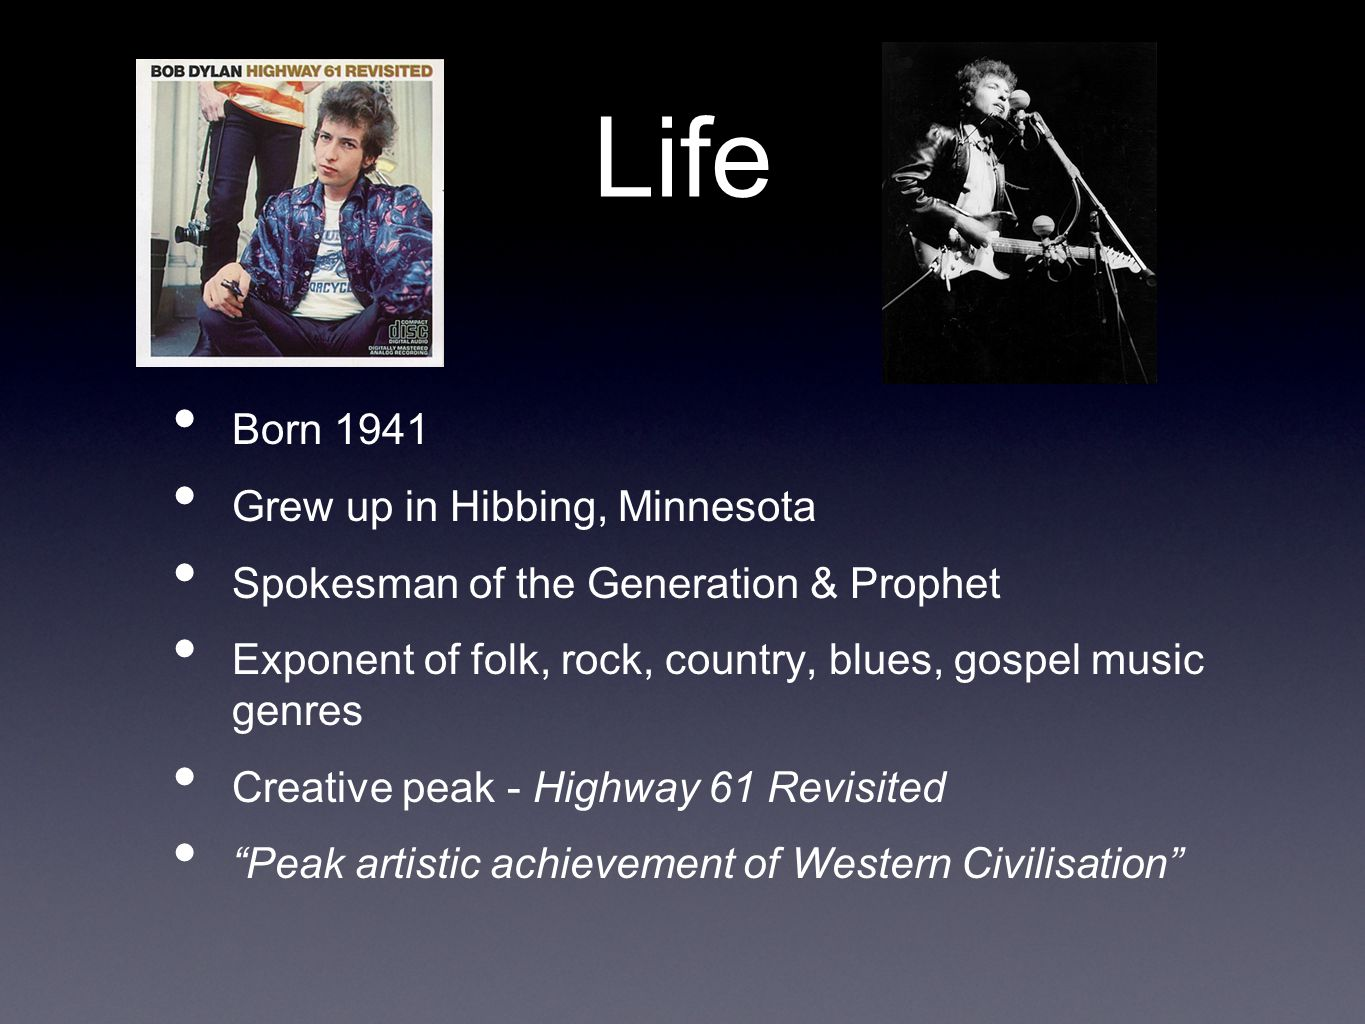 Life Born 1941 Grew up in Hibbing, Minnesota Spokesman of the Generation & Prophet Exponent of folk, rock, country, blues, gospel music genres Creative peak - Highway 61 Revisited Peak artistic achievement of Western Civilisation